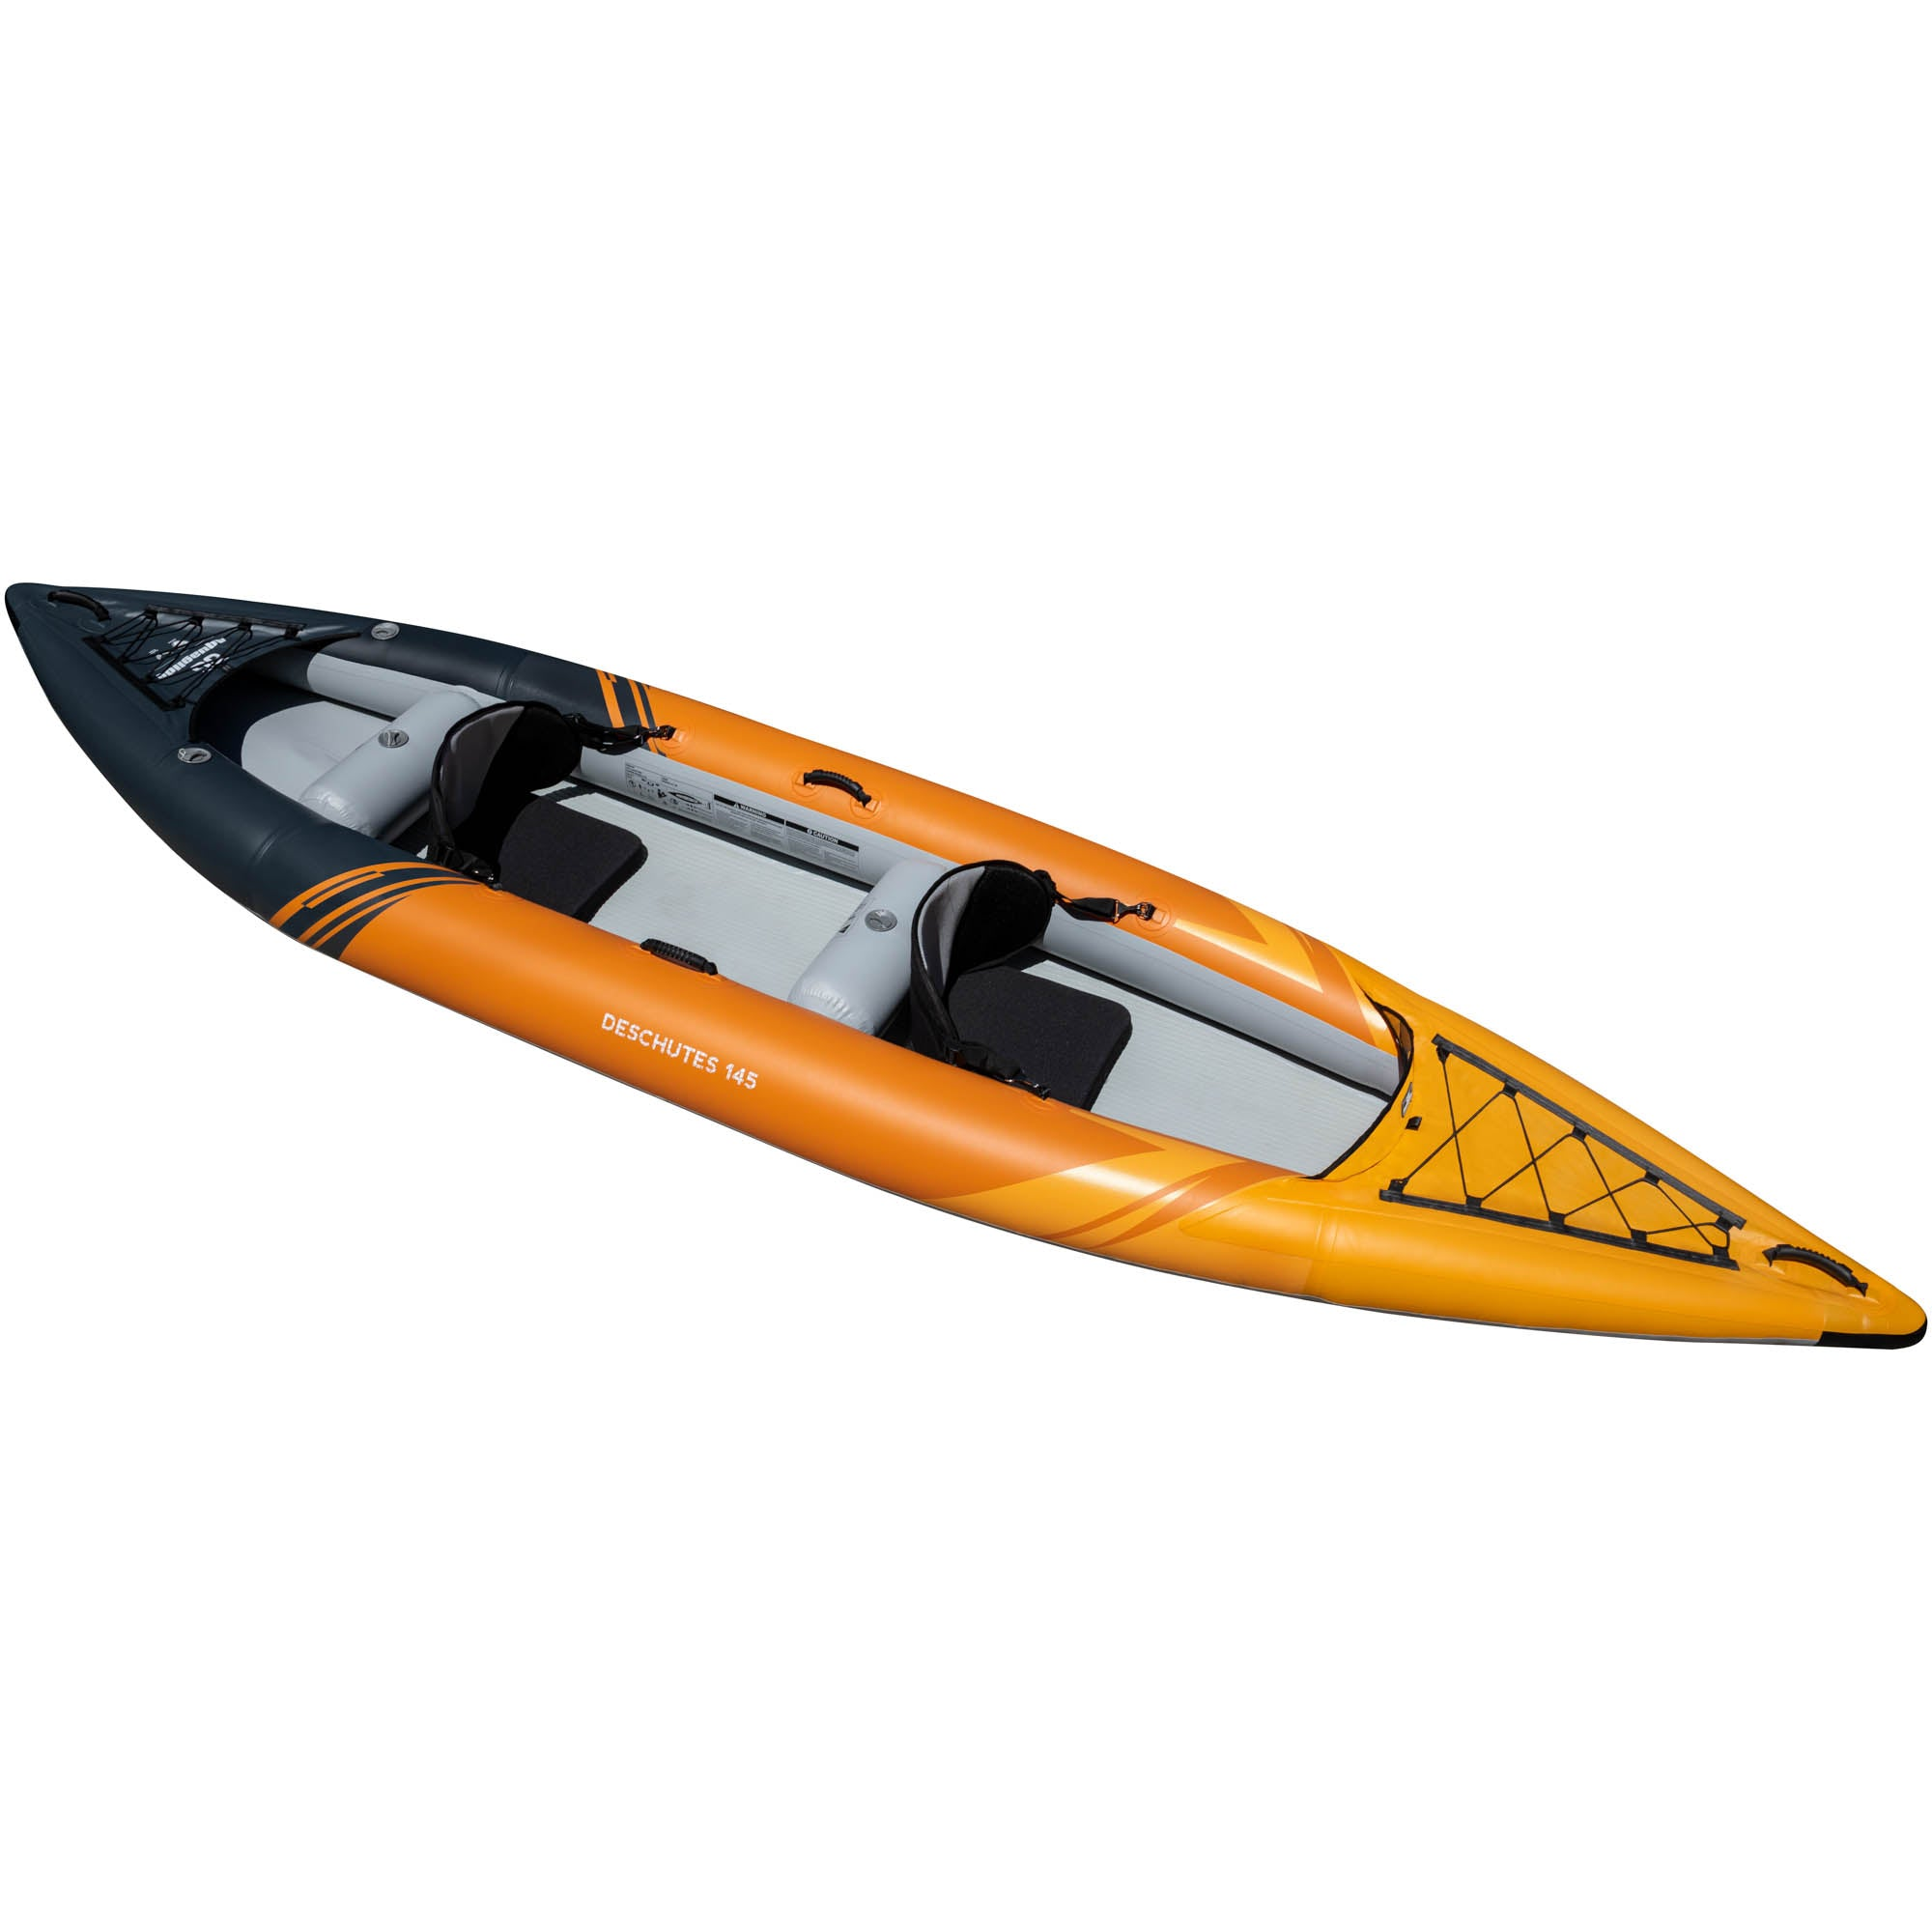 Deschutes 145 Inflatable Kayak